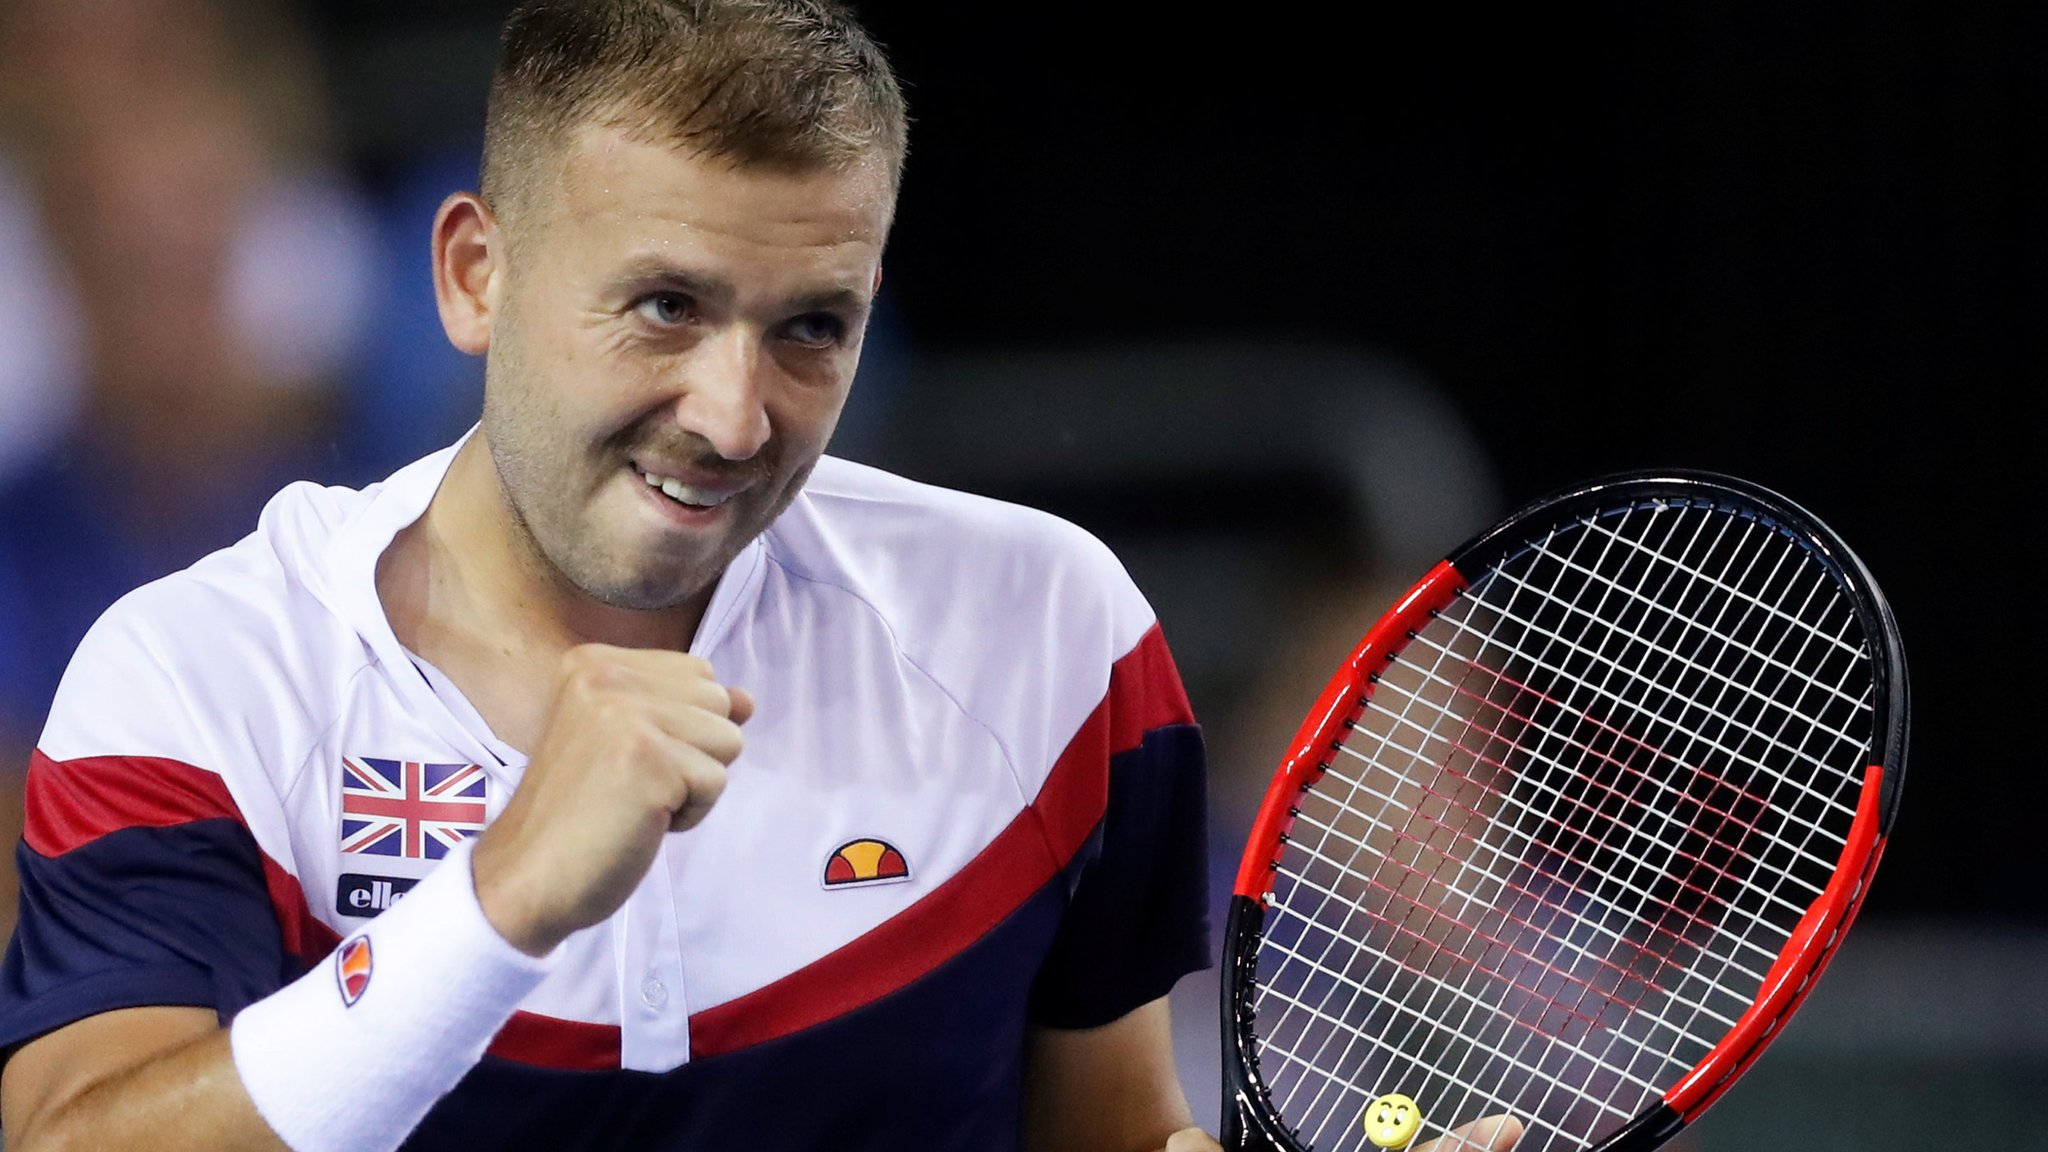 Davis Cup 2018: Great Britain 1-1 Uzbekistan after Dan Evans wins but Cameron Norrie loses